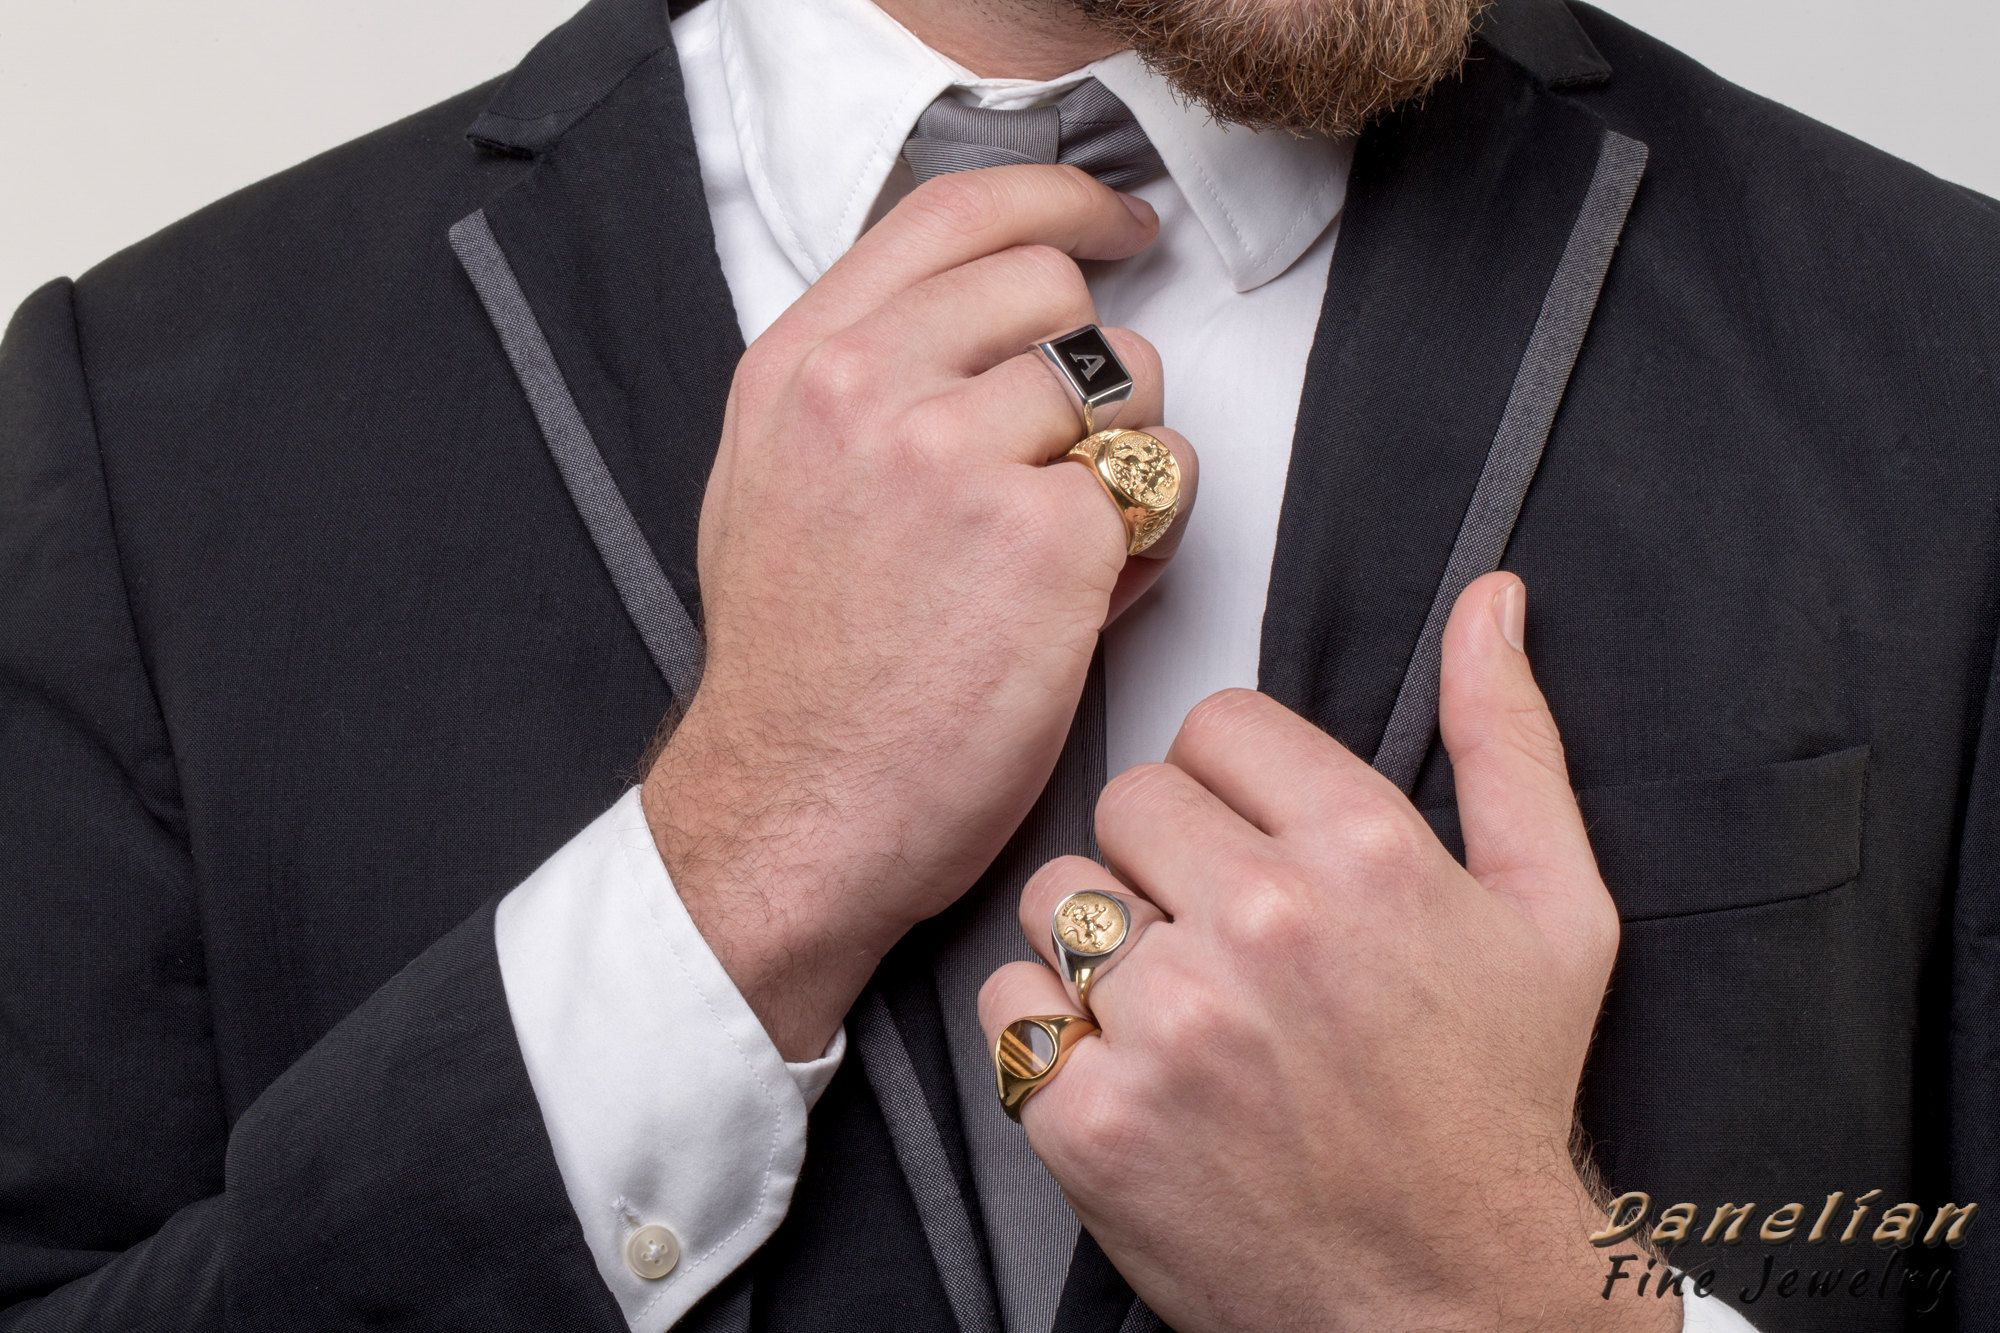 Exclusive 2018 Man Rings / Sovereign & Statement Jewelry created ...